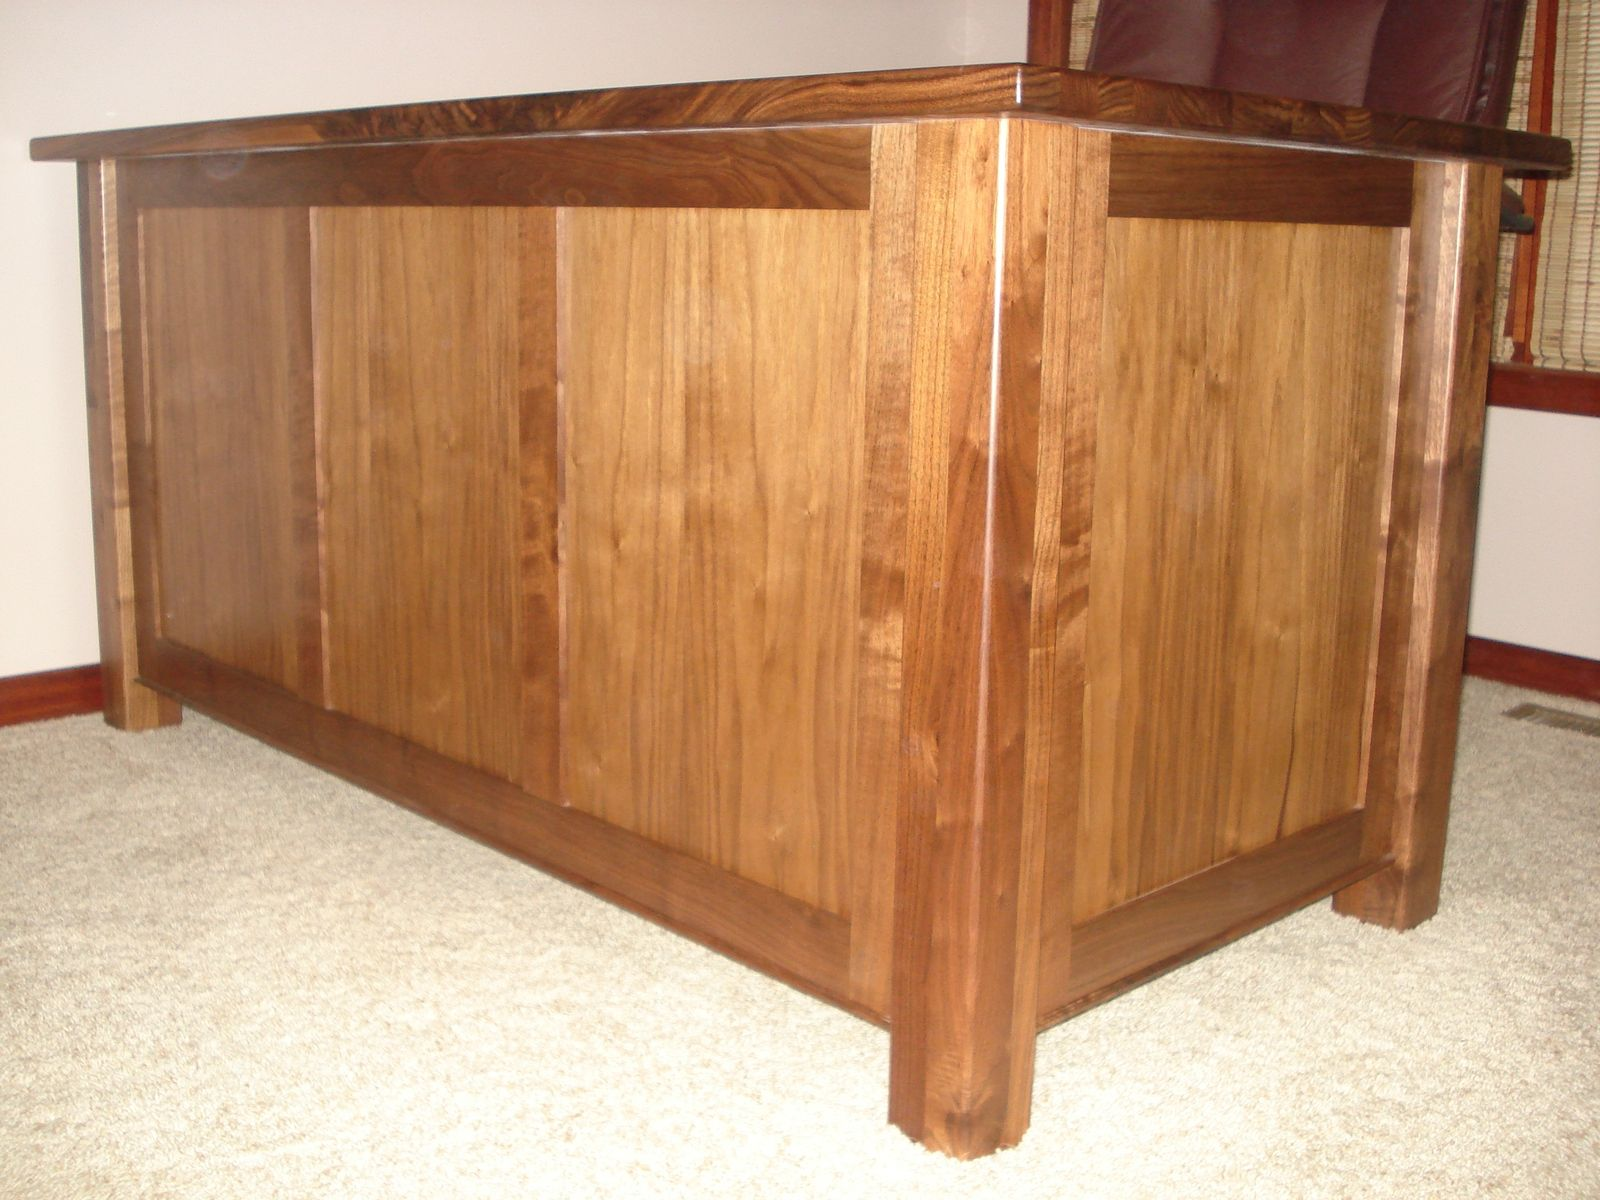 style computer oak table stylish secretary furniture wood mission student rustic solid desk roll top